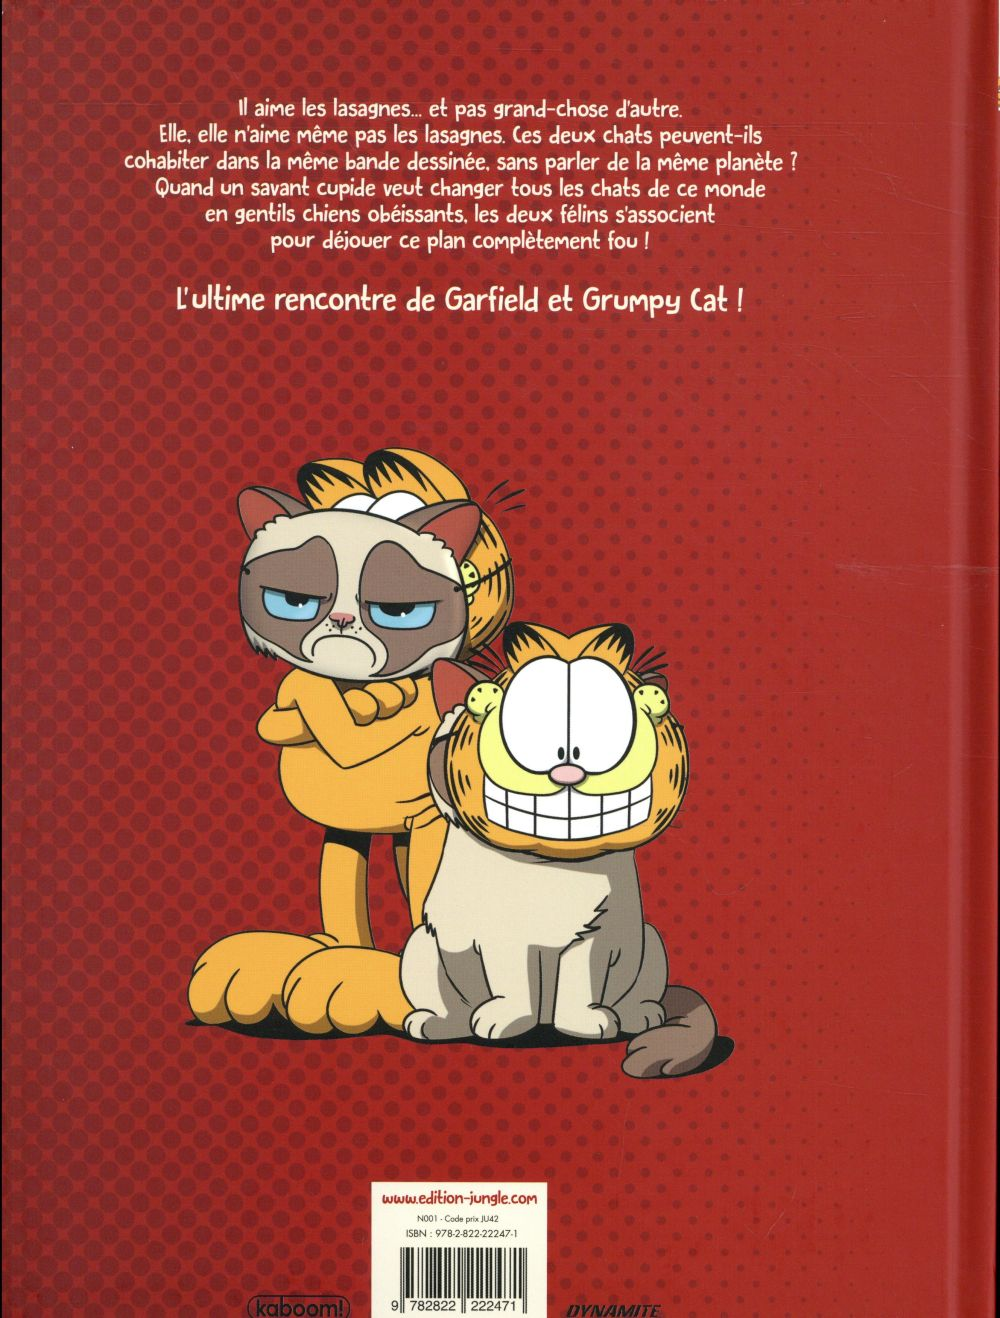 Grumpy cat, Garfield, comme chiens et chats !